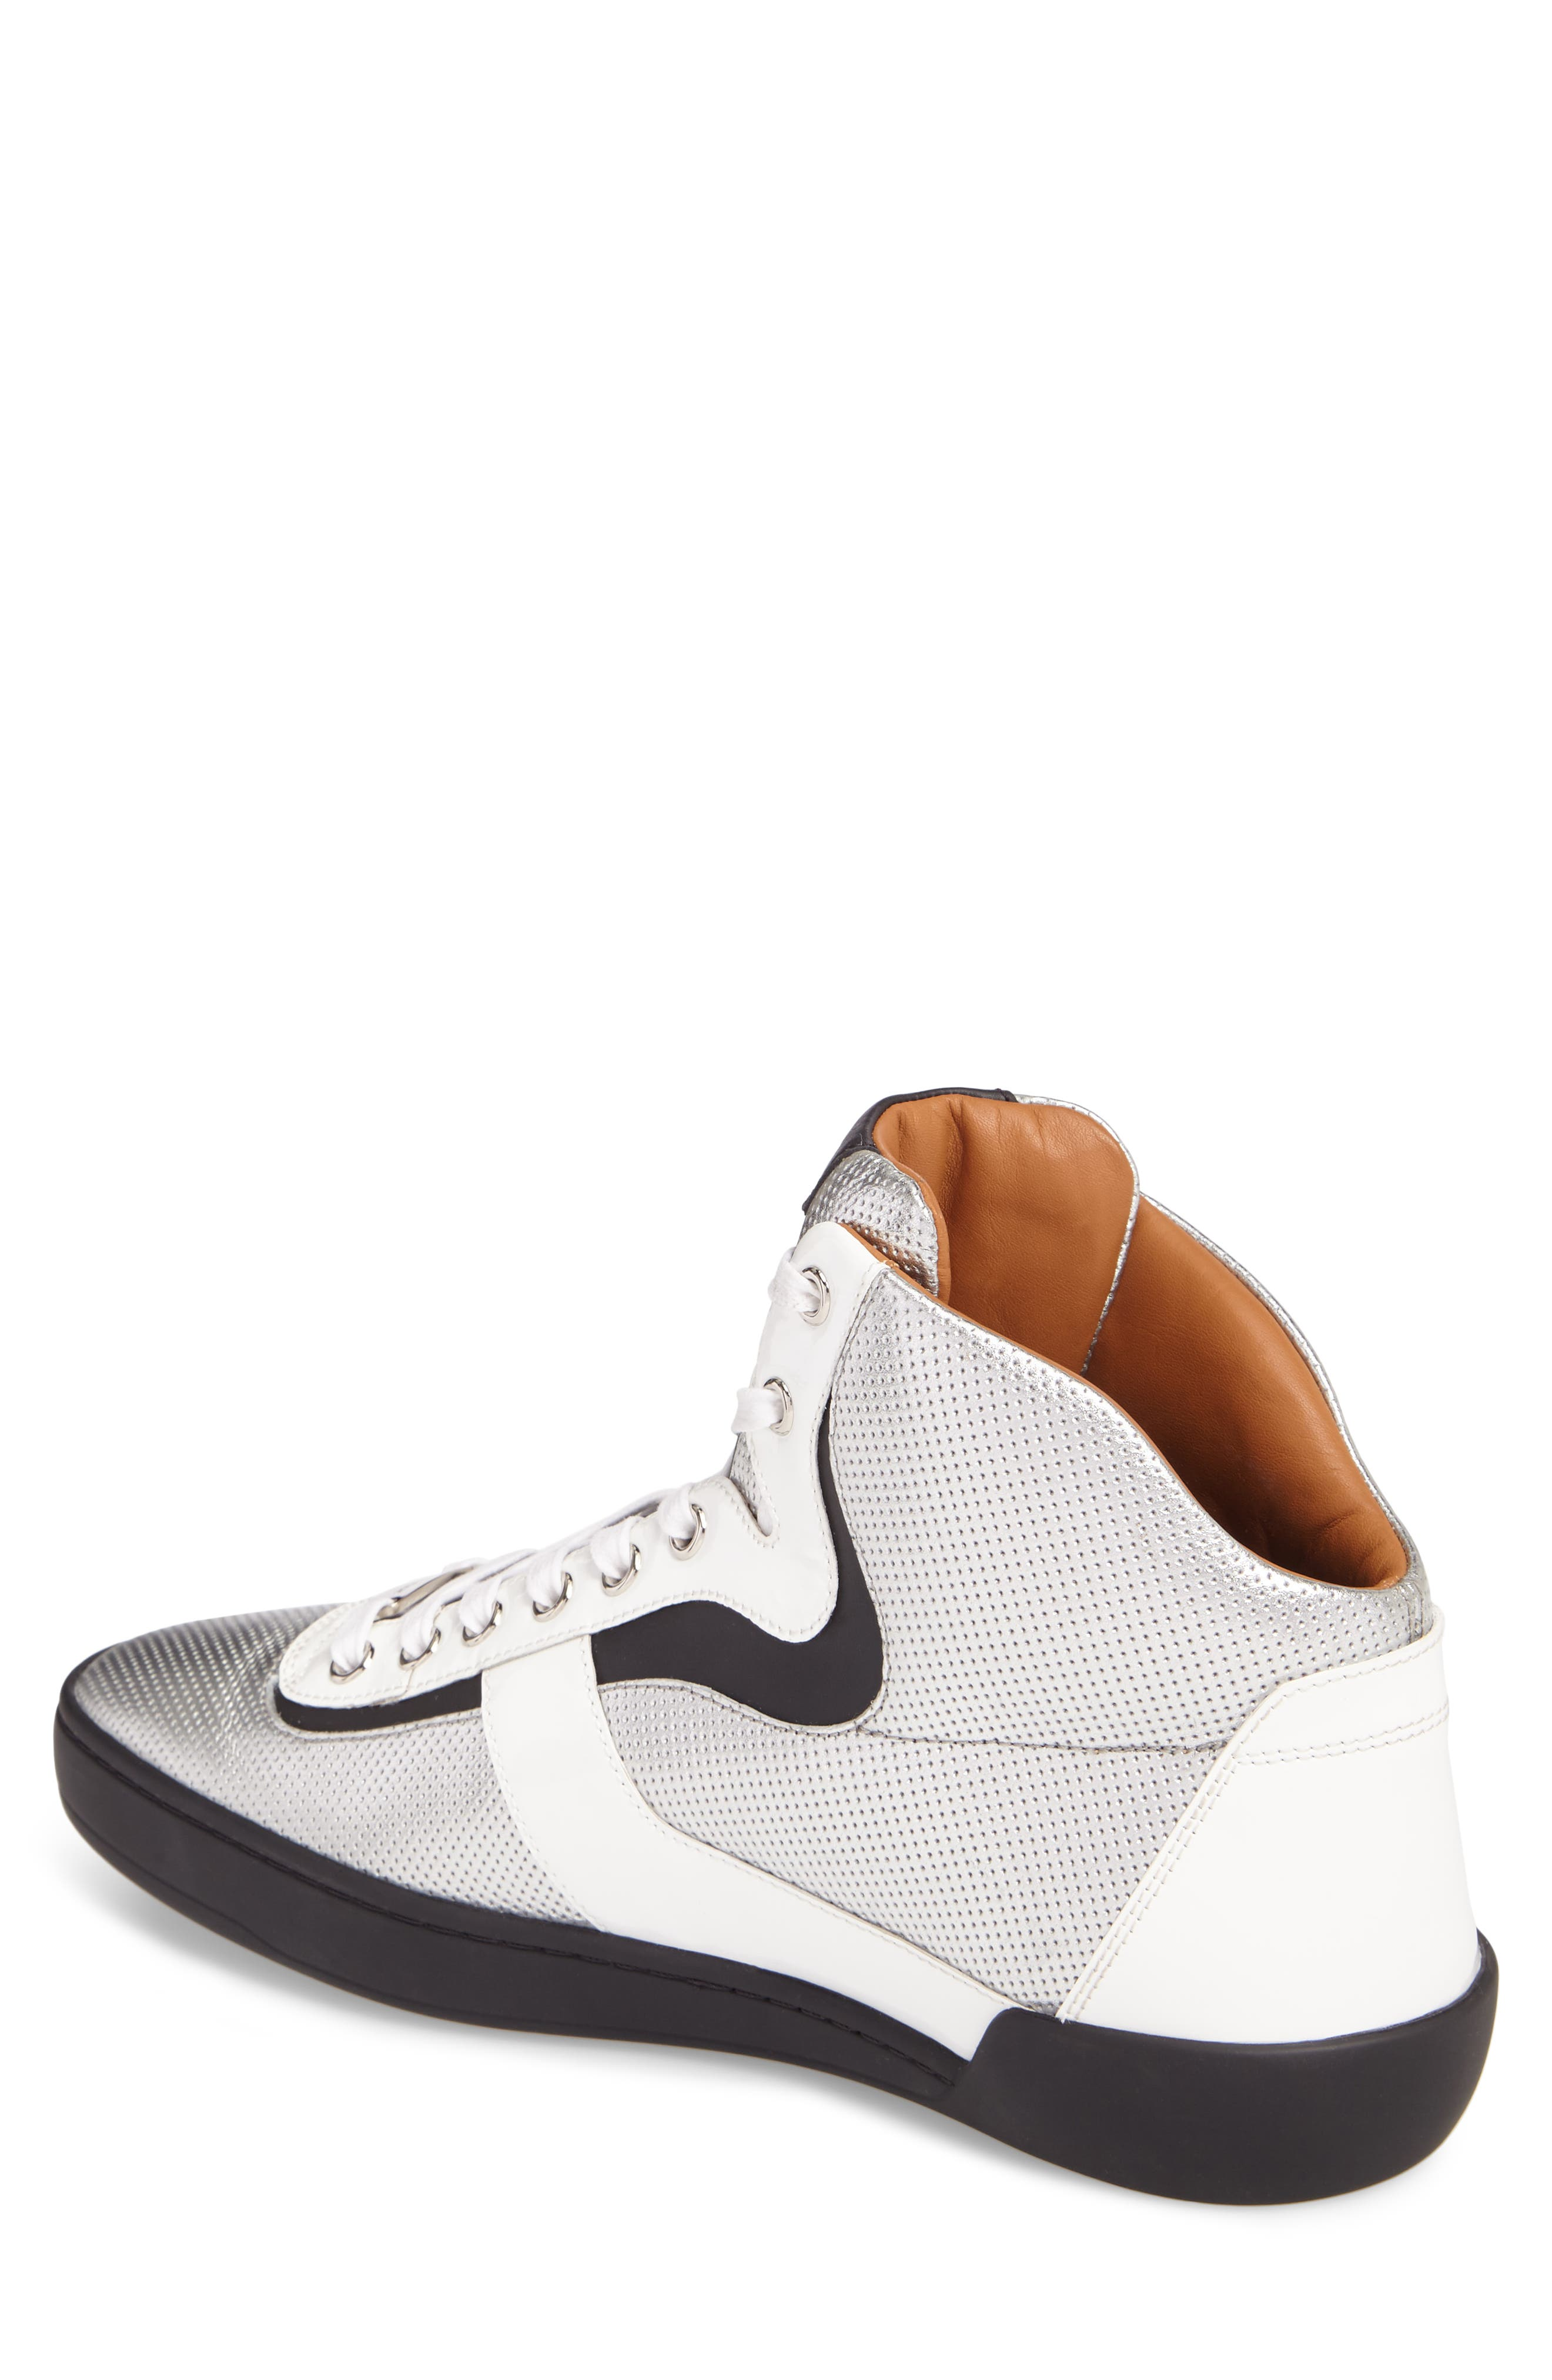 Eroy High Top Sneaker,                             Alternate thumbnail 2, color,                             049